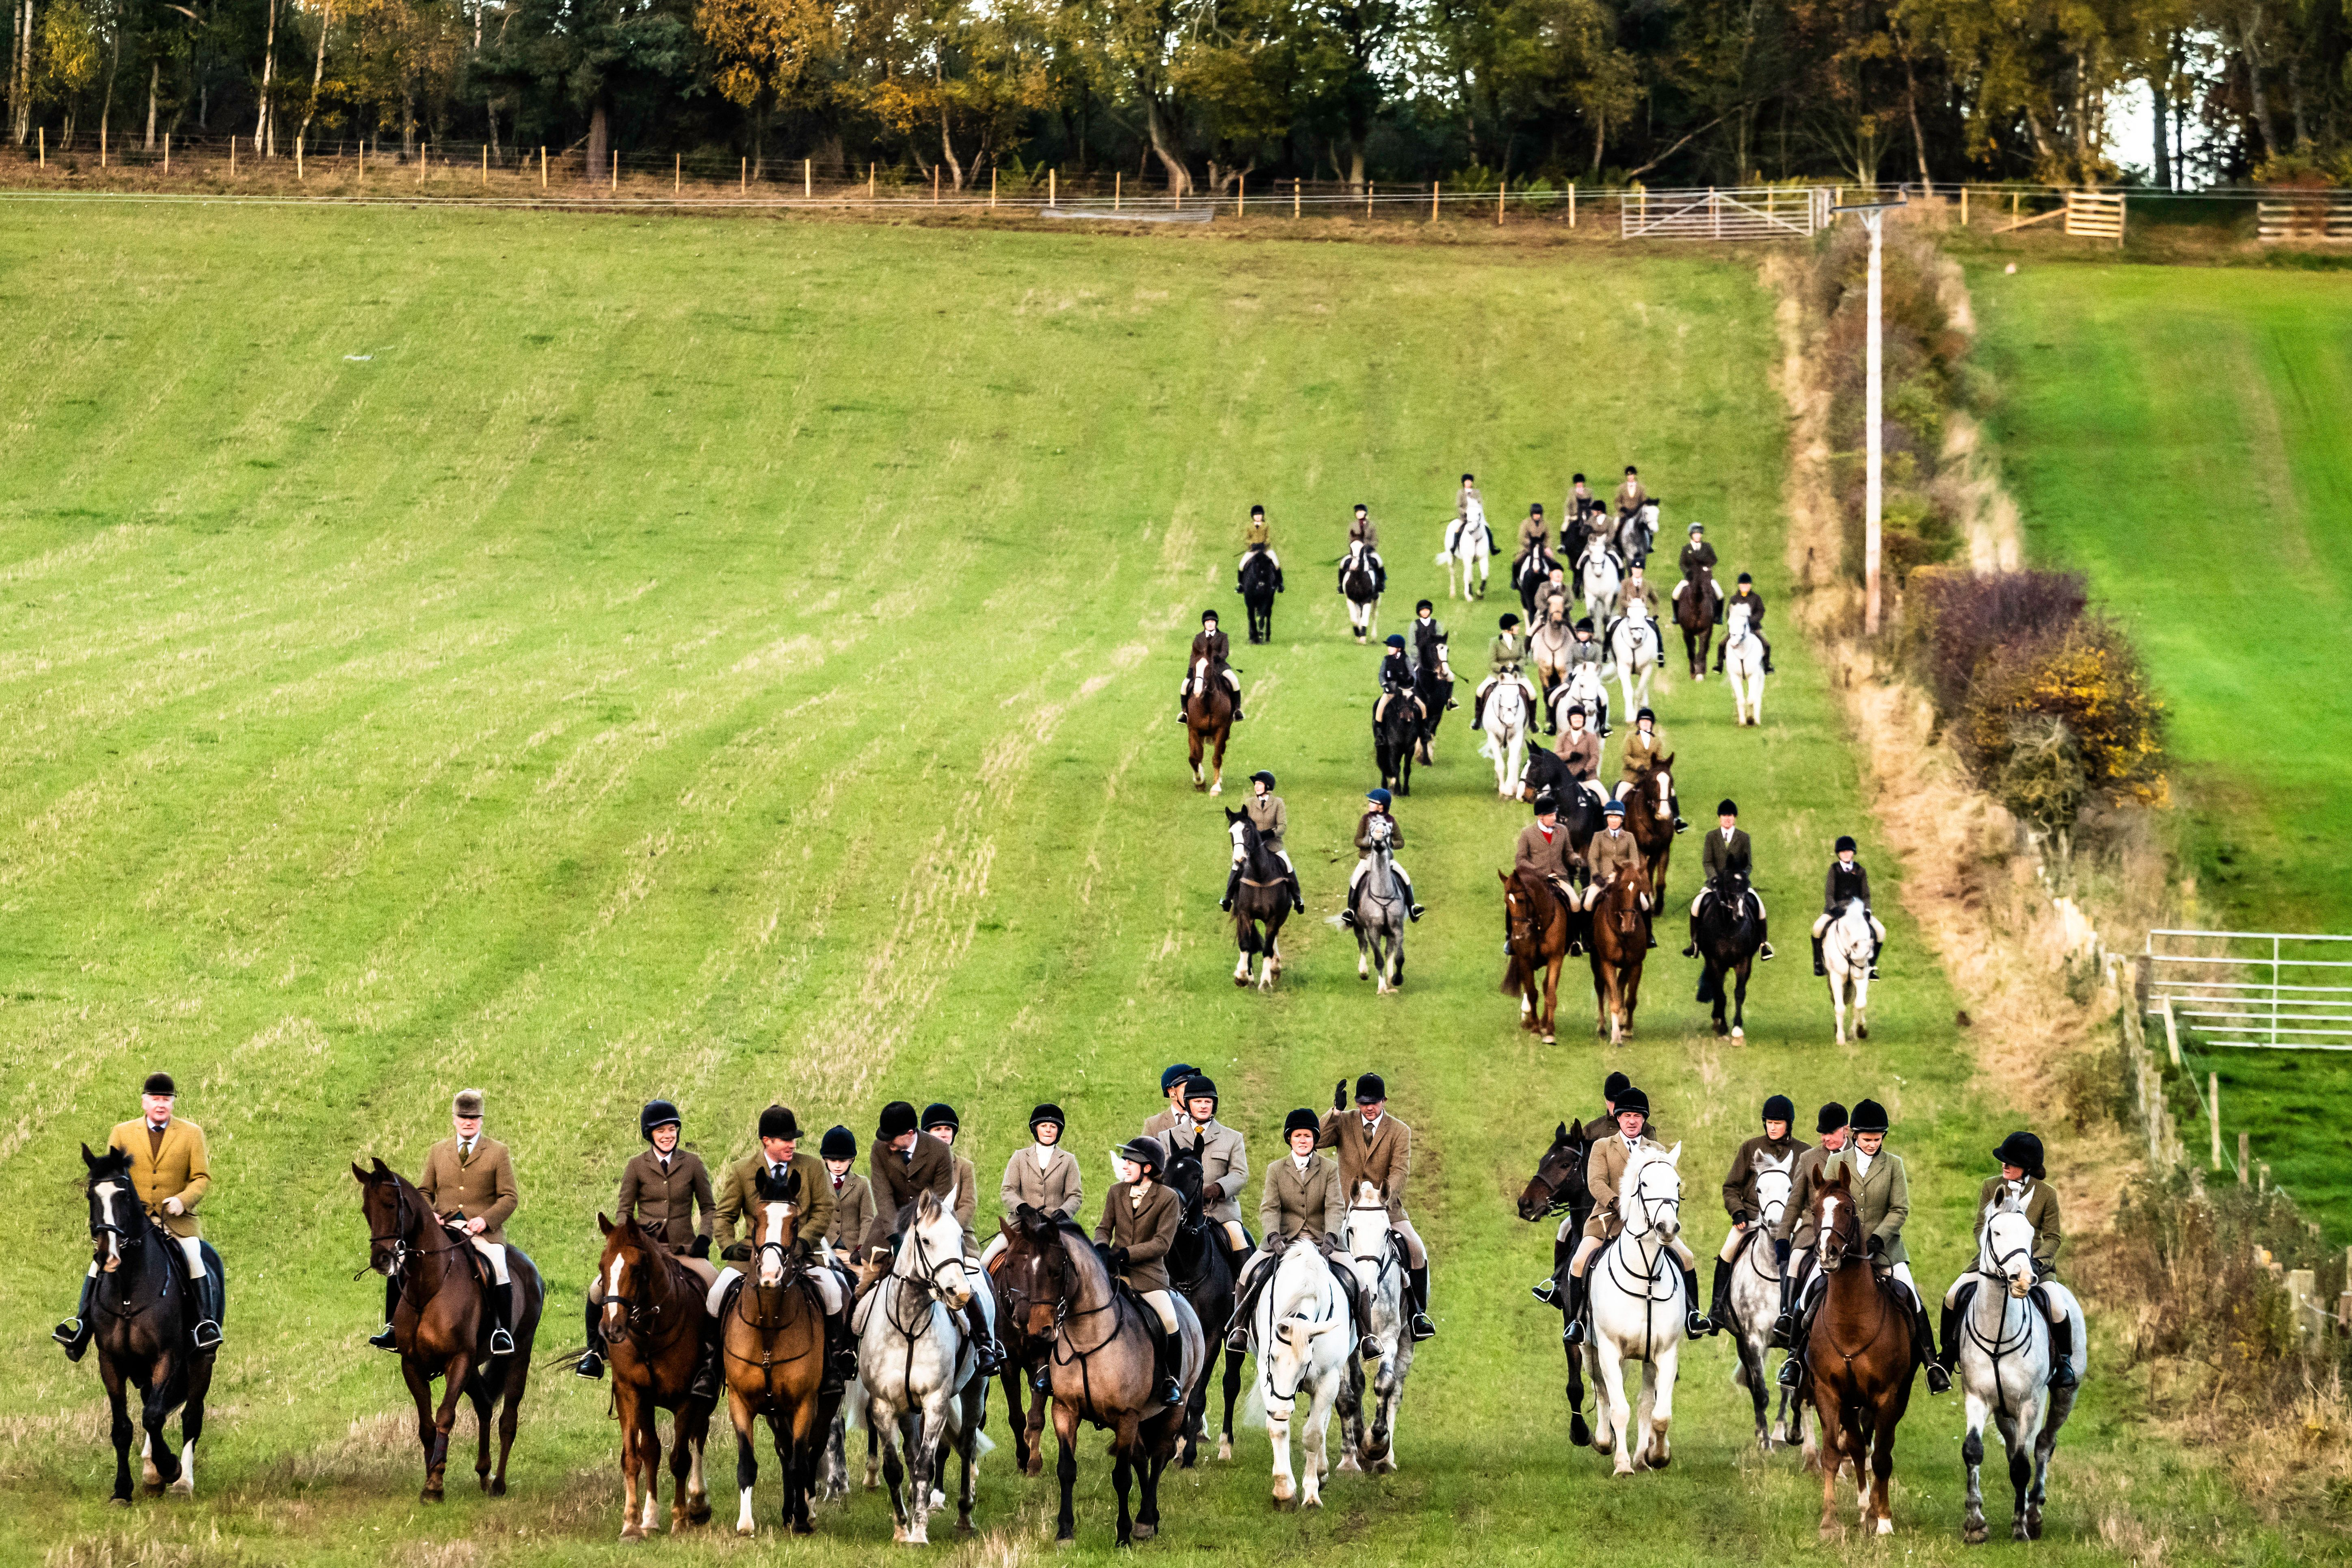 Labour To Consider Jail Terms For Illegal Hunts In A Bid To Strengthen